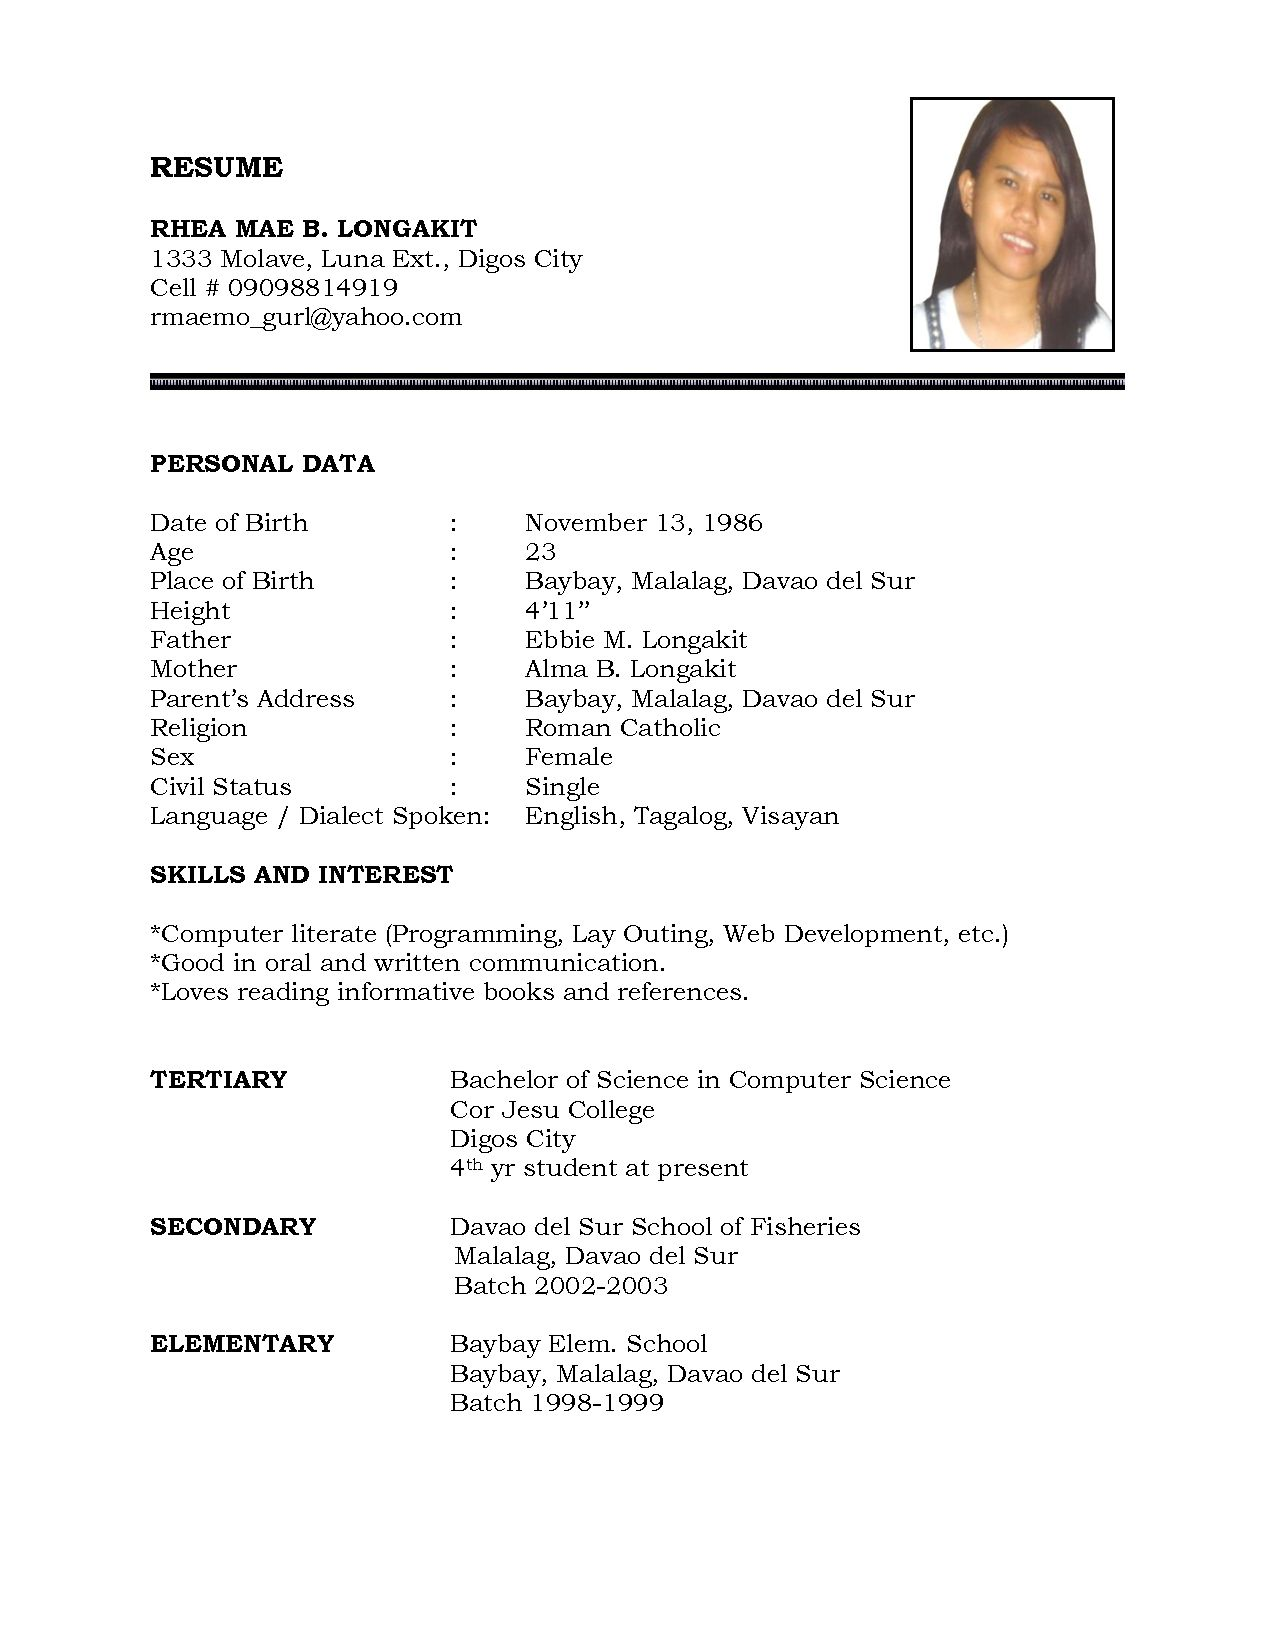 resume sample simple de9e2a60f the simple format of resume for job - Simple Format For Resume